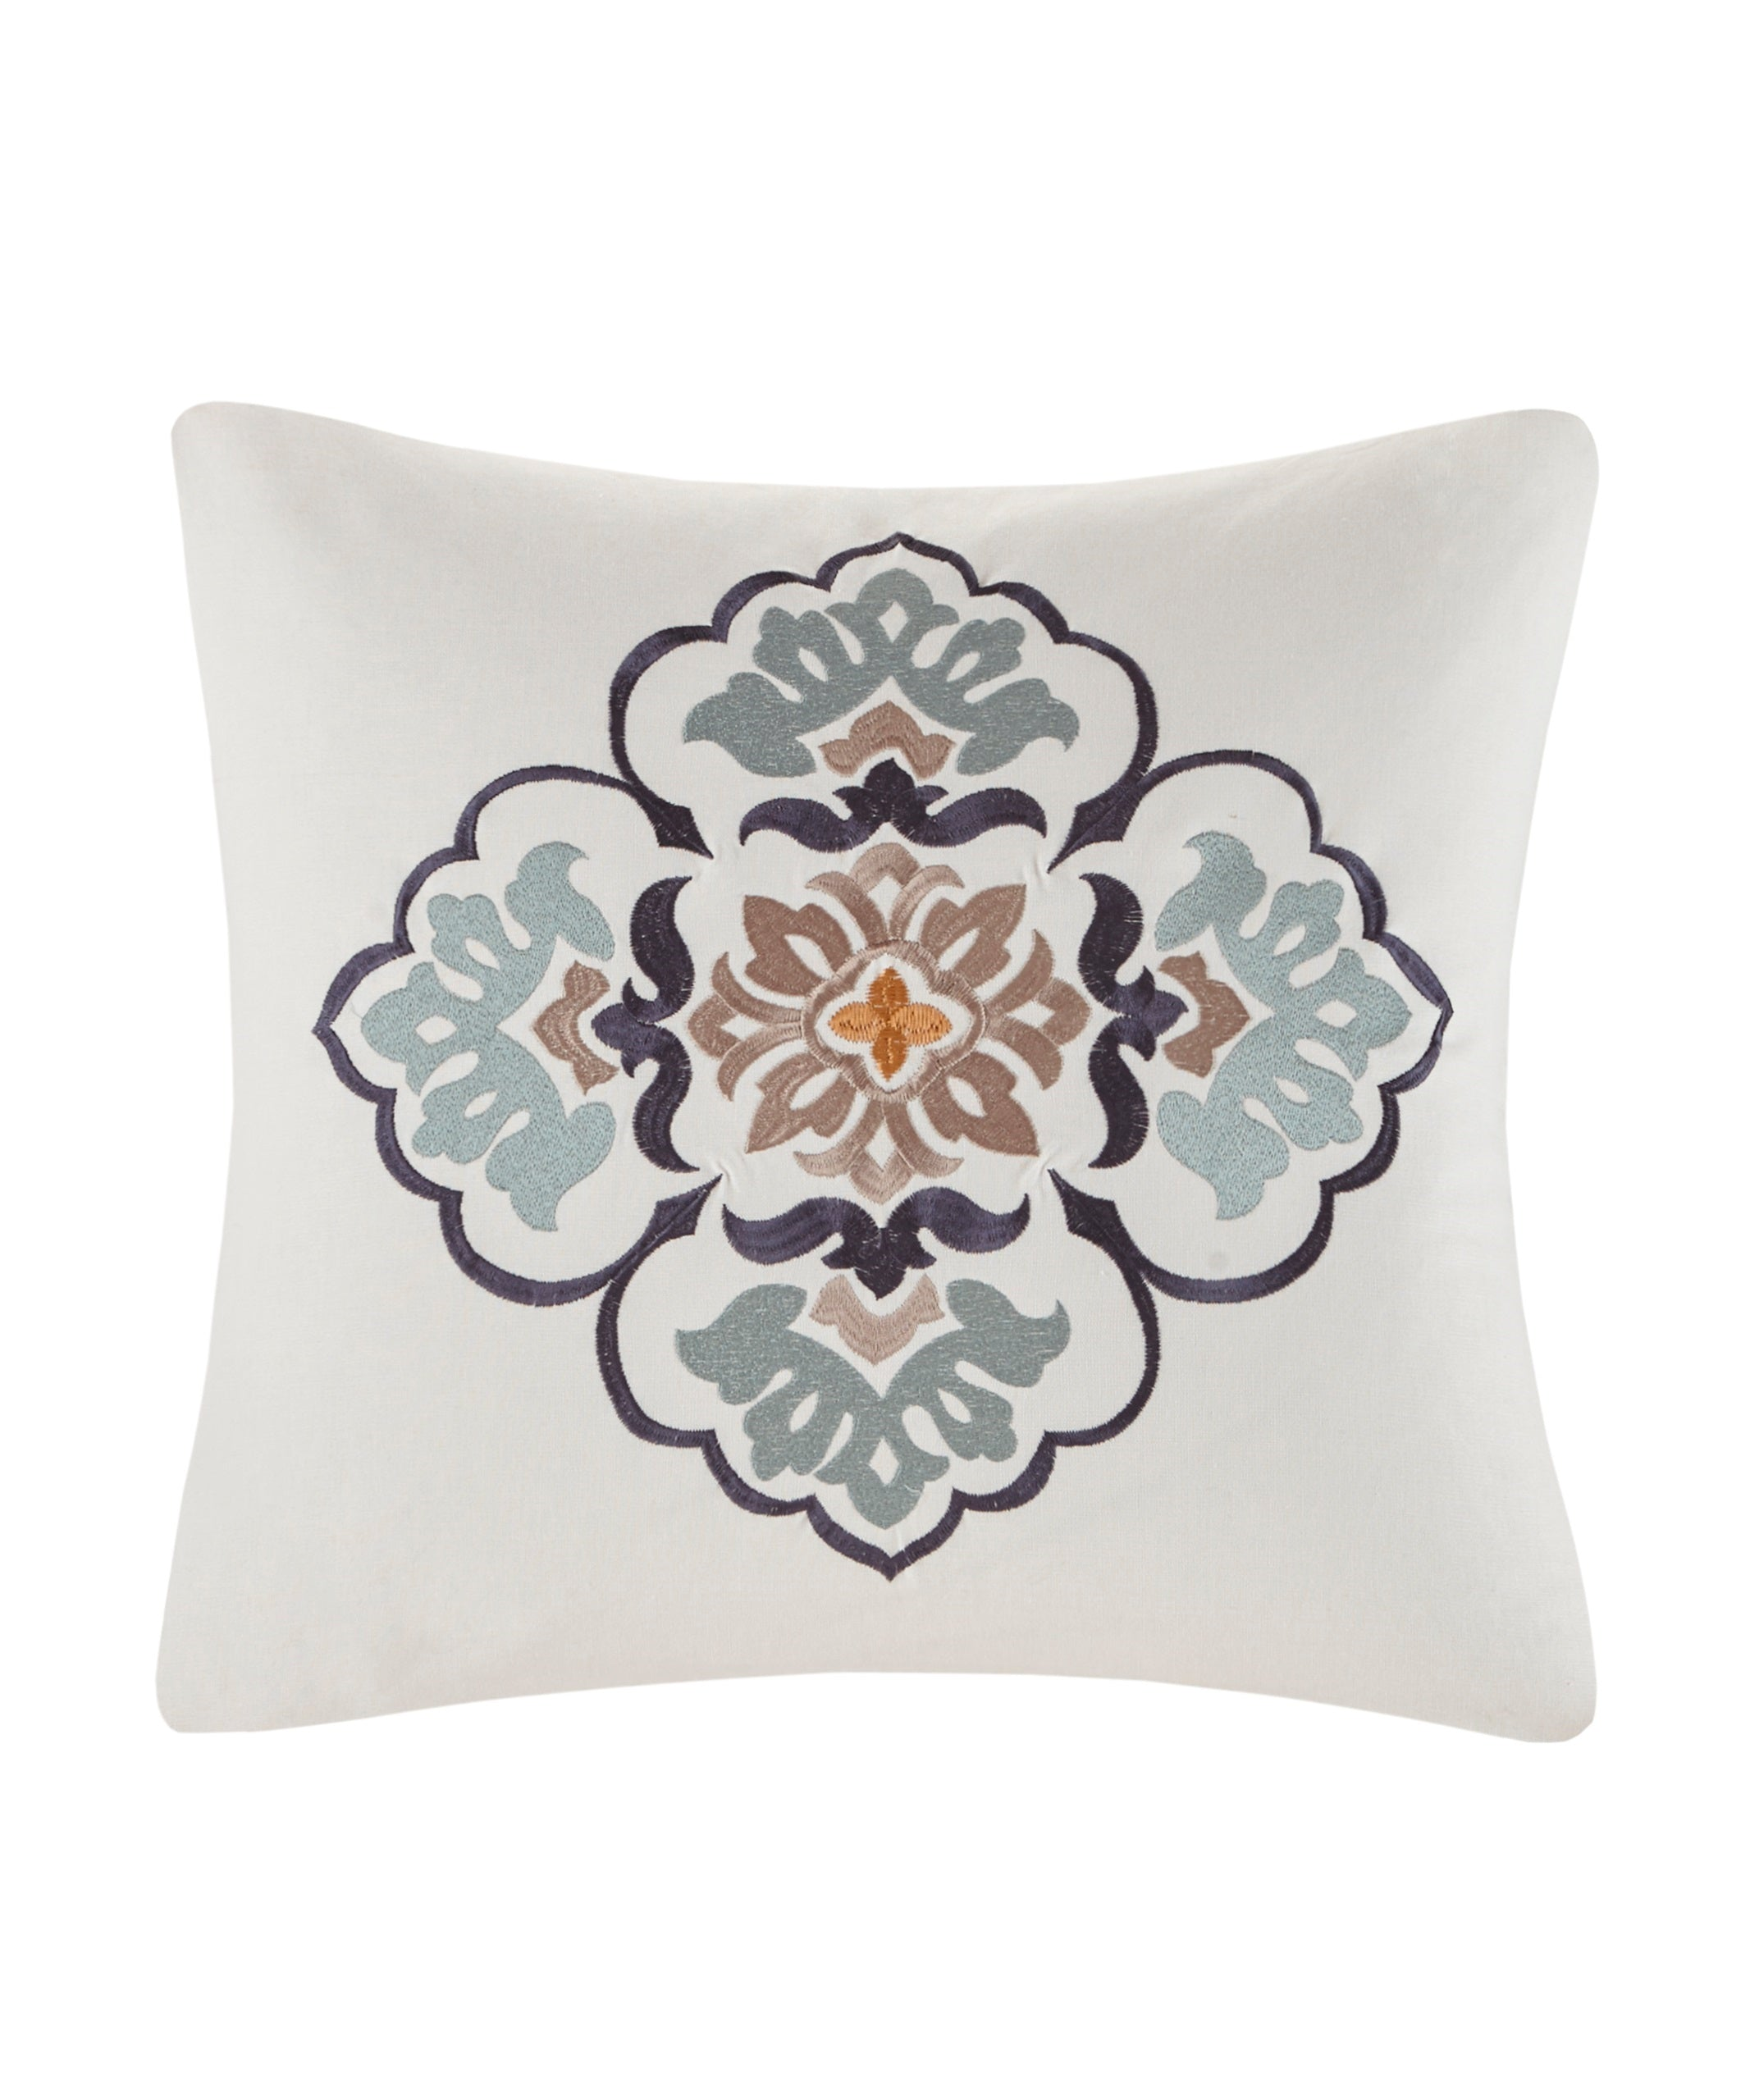 Indigo/Cream - Paisley Shawl Square Pillow